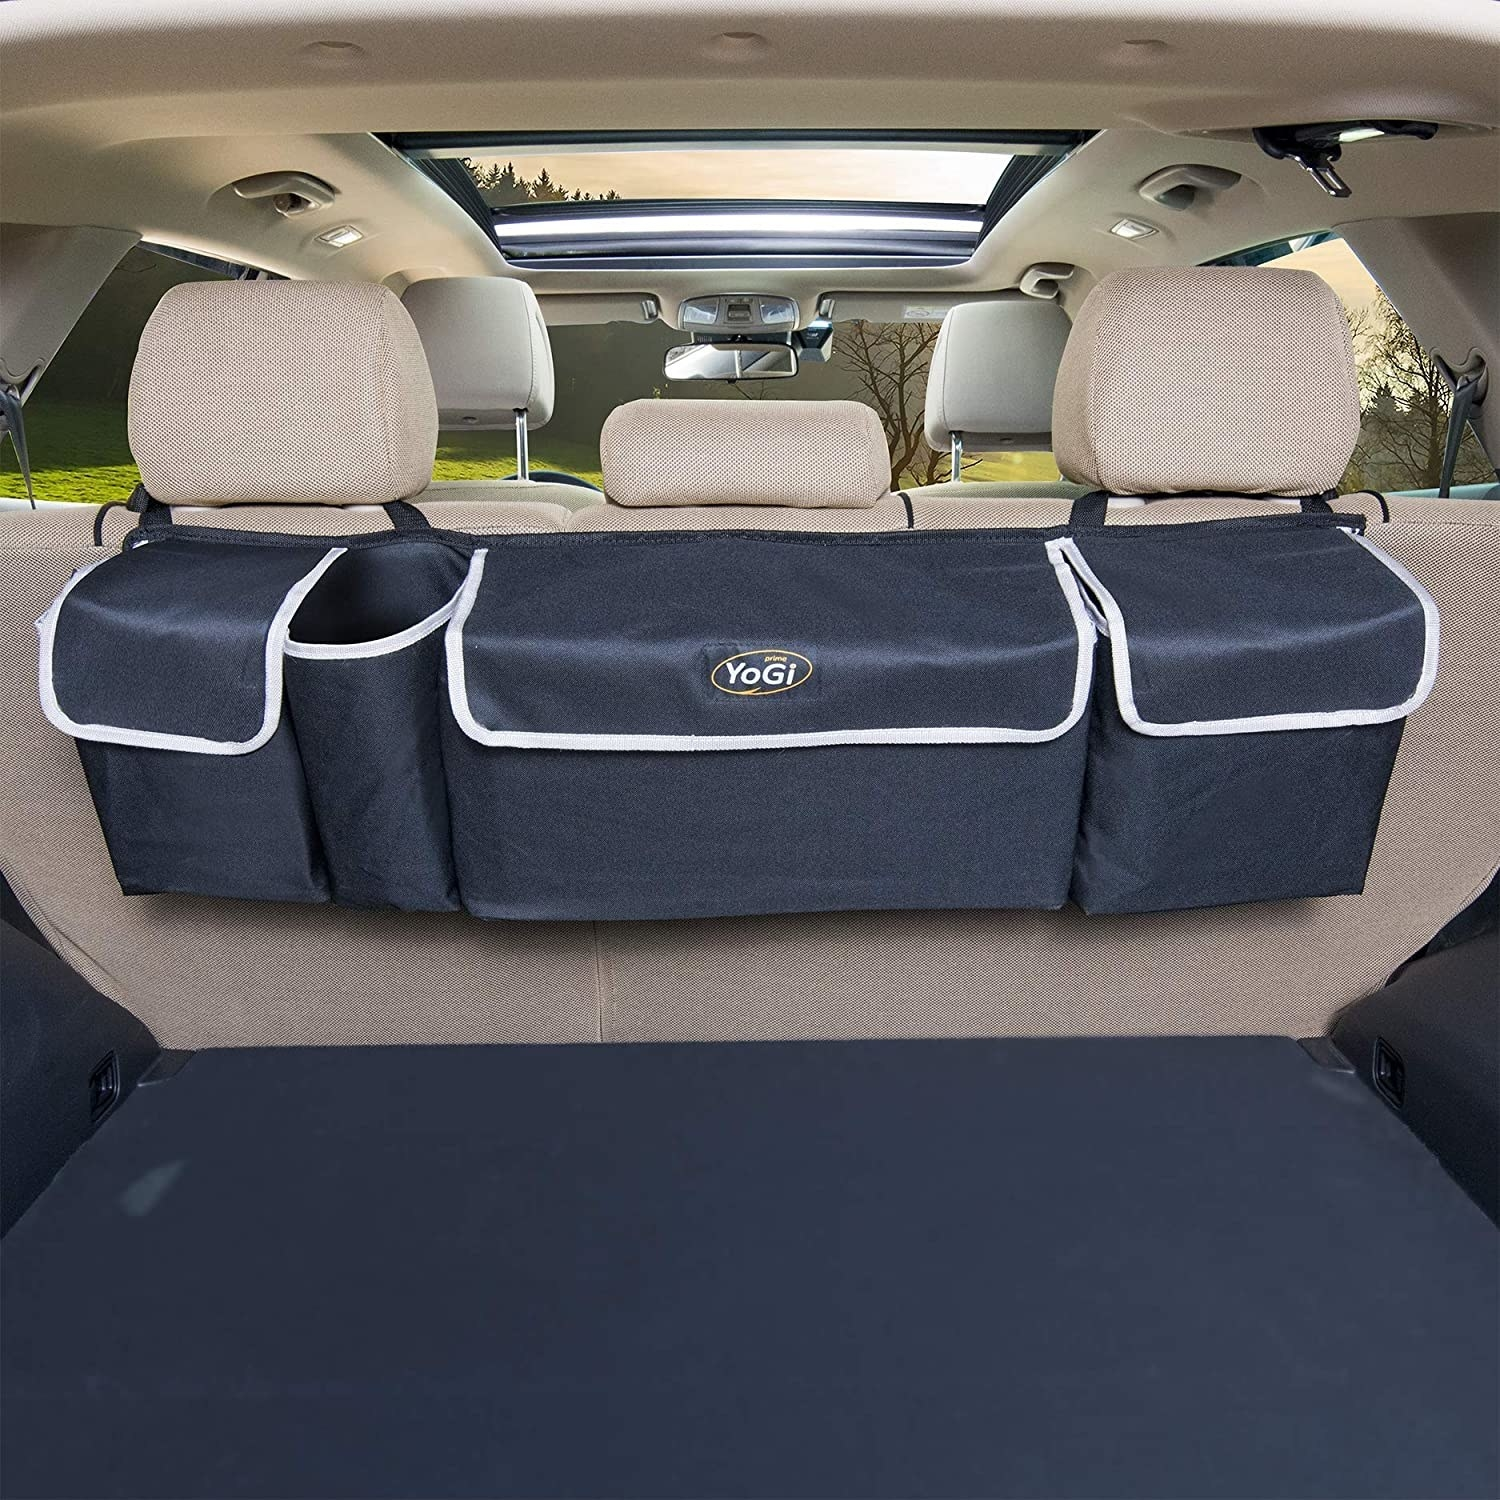 A navy blue with white piping storage organizer with three large pockets hanging from the backseat into a car's trunk